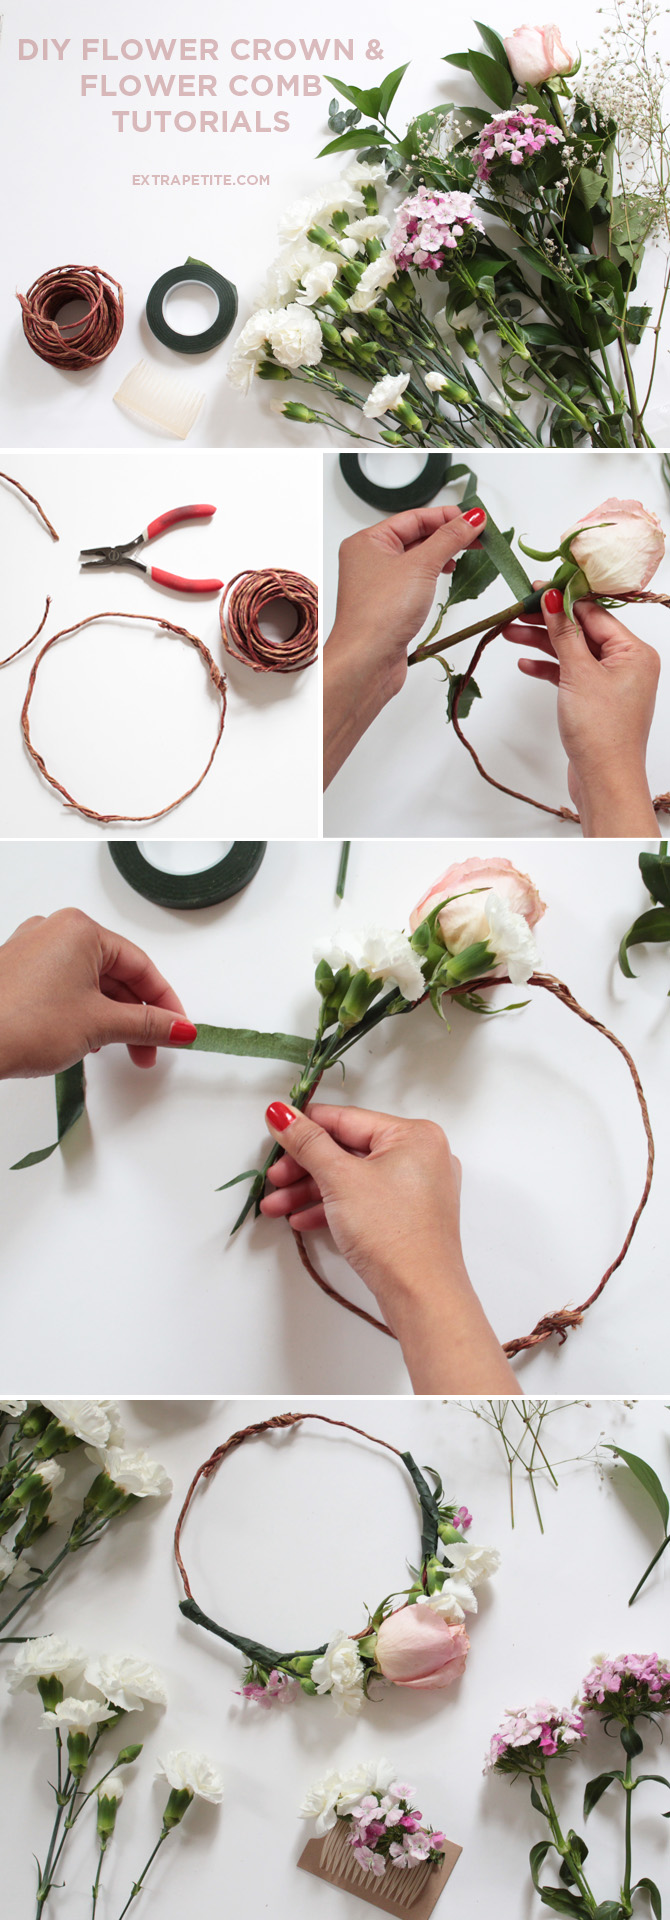 DIY flower crown floral comb tutorial bridal